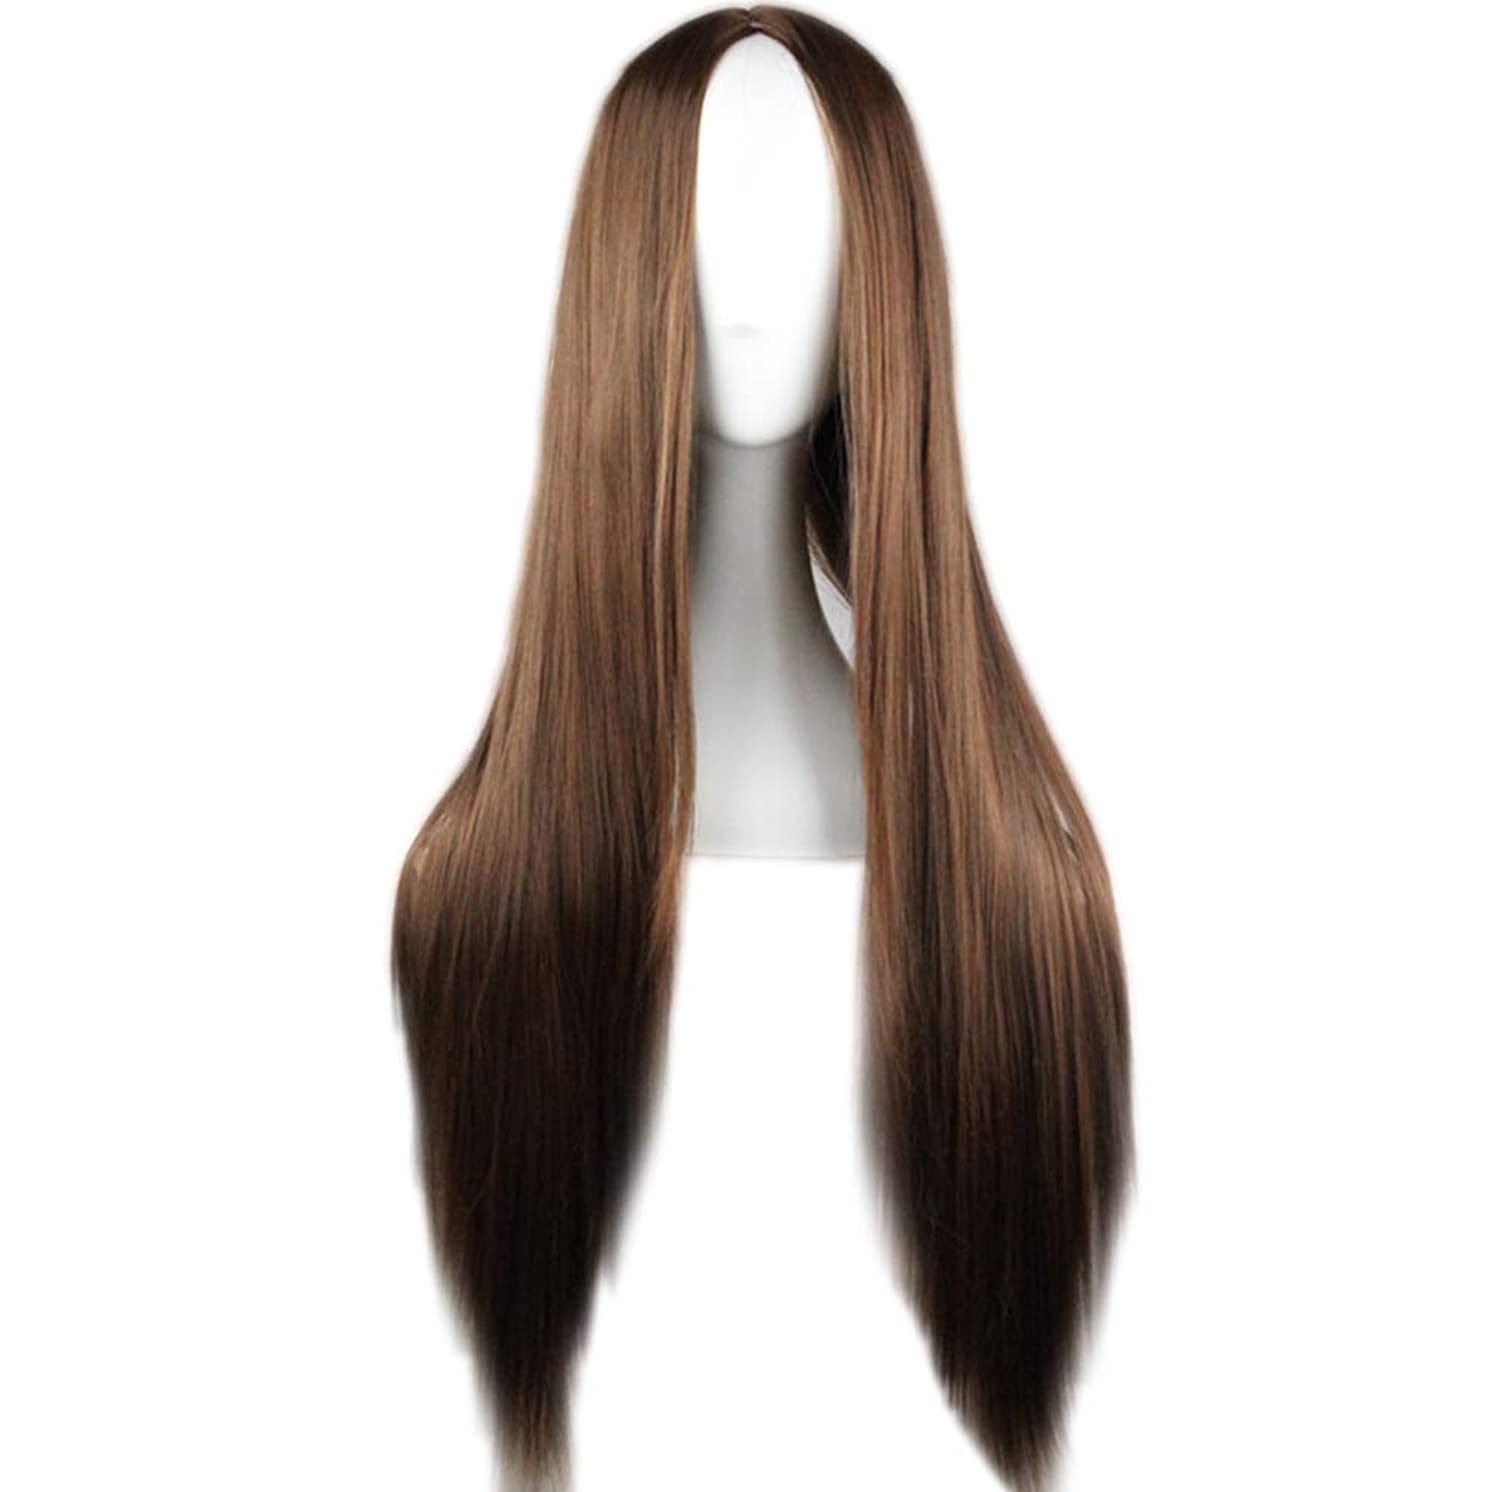 top0dream Synthetic for Wigs Fashion Women Solid Color Central Parting Long Straight Wig Cosplay Hairpiece Synthetic Loose Curly Front Wig for Women Natural Heat Resistant Hair- Dark Brown